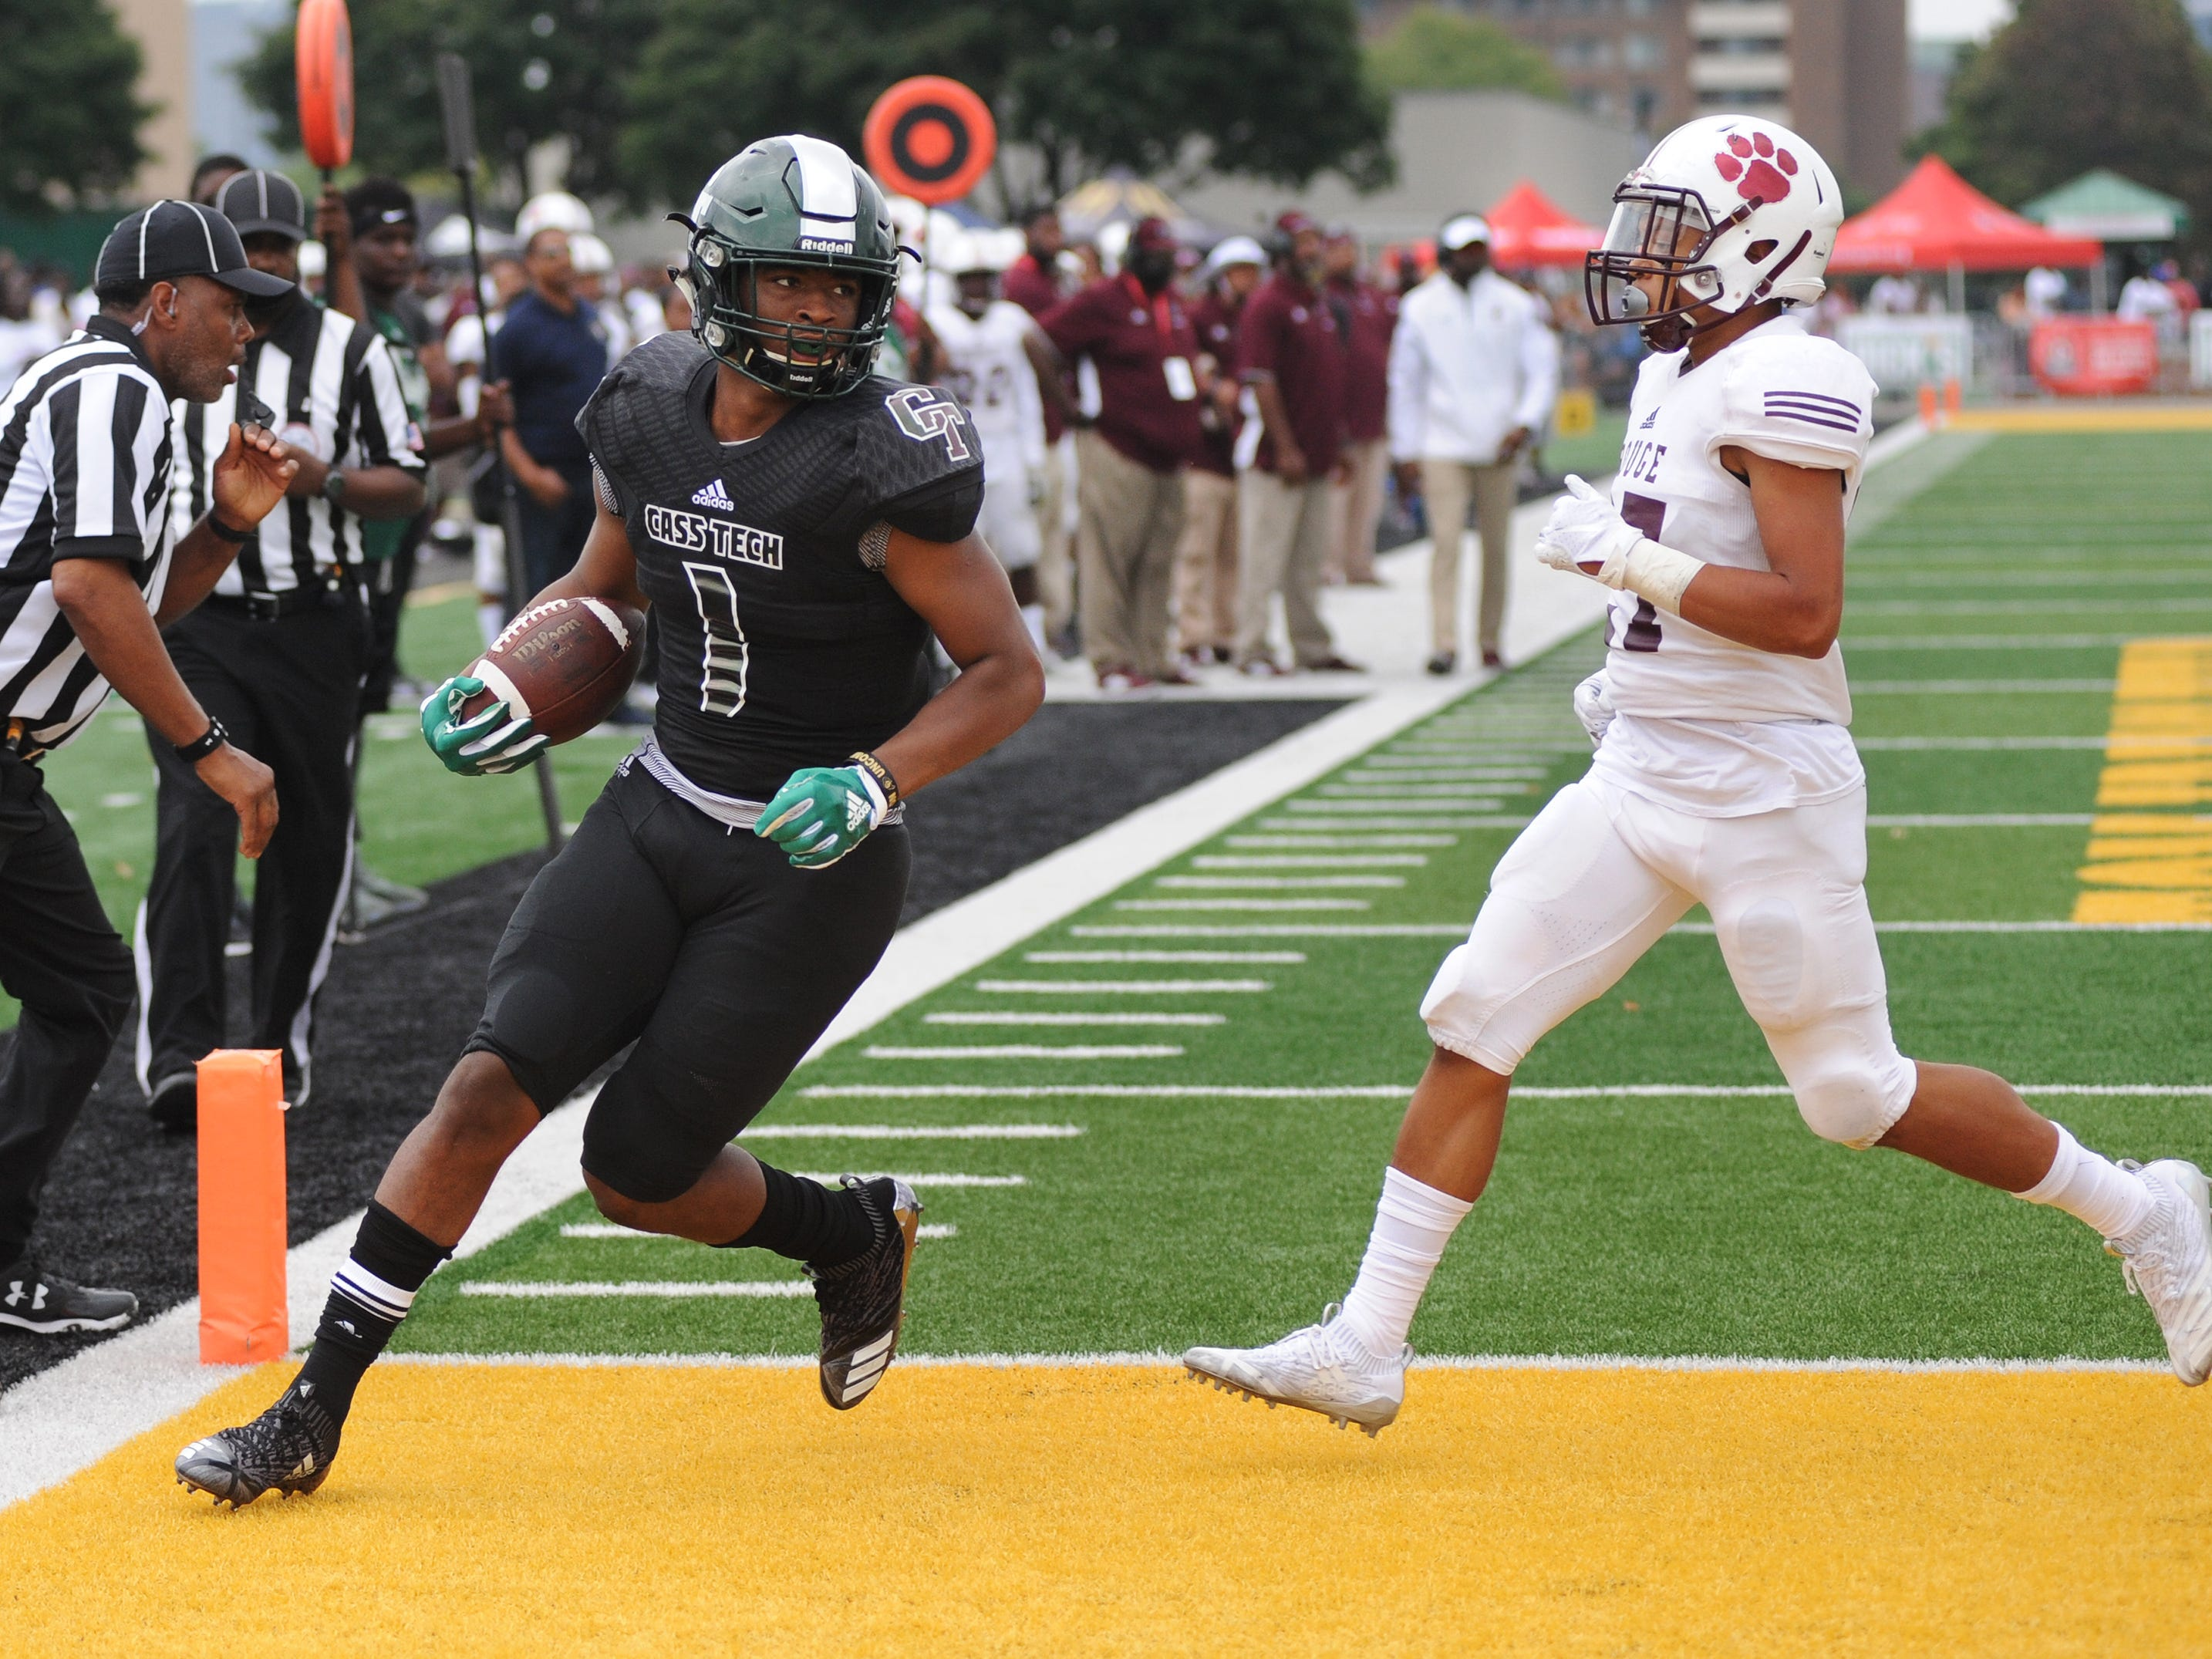 """8. Jaren Mangham, Detroit Cass Tech (Colorado, early enroll) — RB/6-1/214: Mangham was a threat to break a long run every time he touched the ball, piling up 1,098 yards (89 carries) and 26 touchdowns to help Cass Tech to a PSL championship. """"He has great hands, catches the ball very well and is a powerful runner that makes leaps over players from five yards out for touchdowns,"""" coach Thomas Wilcher said."""